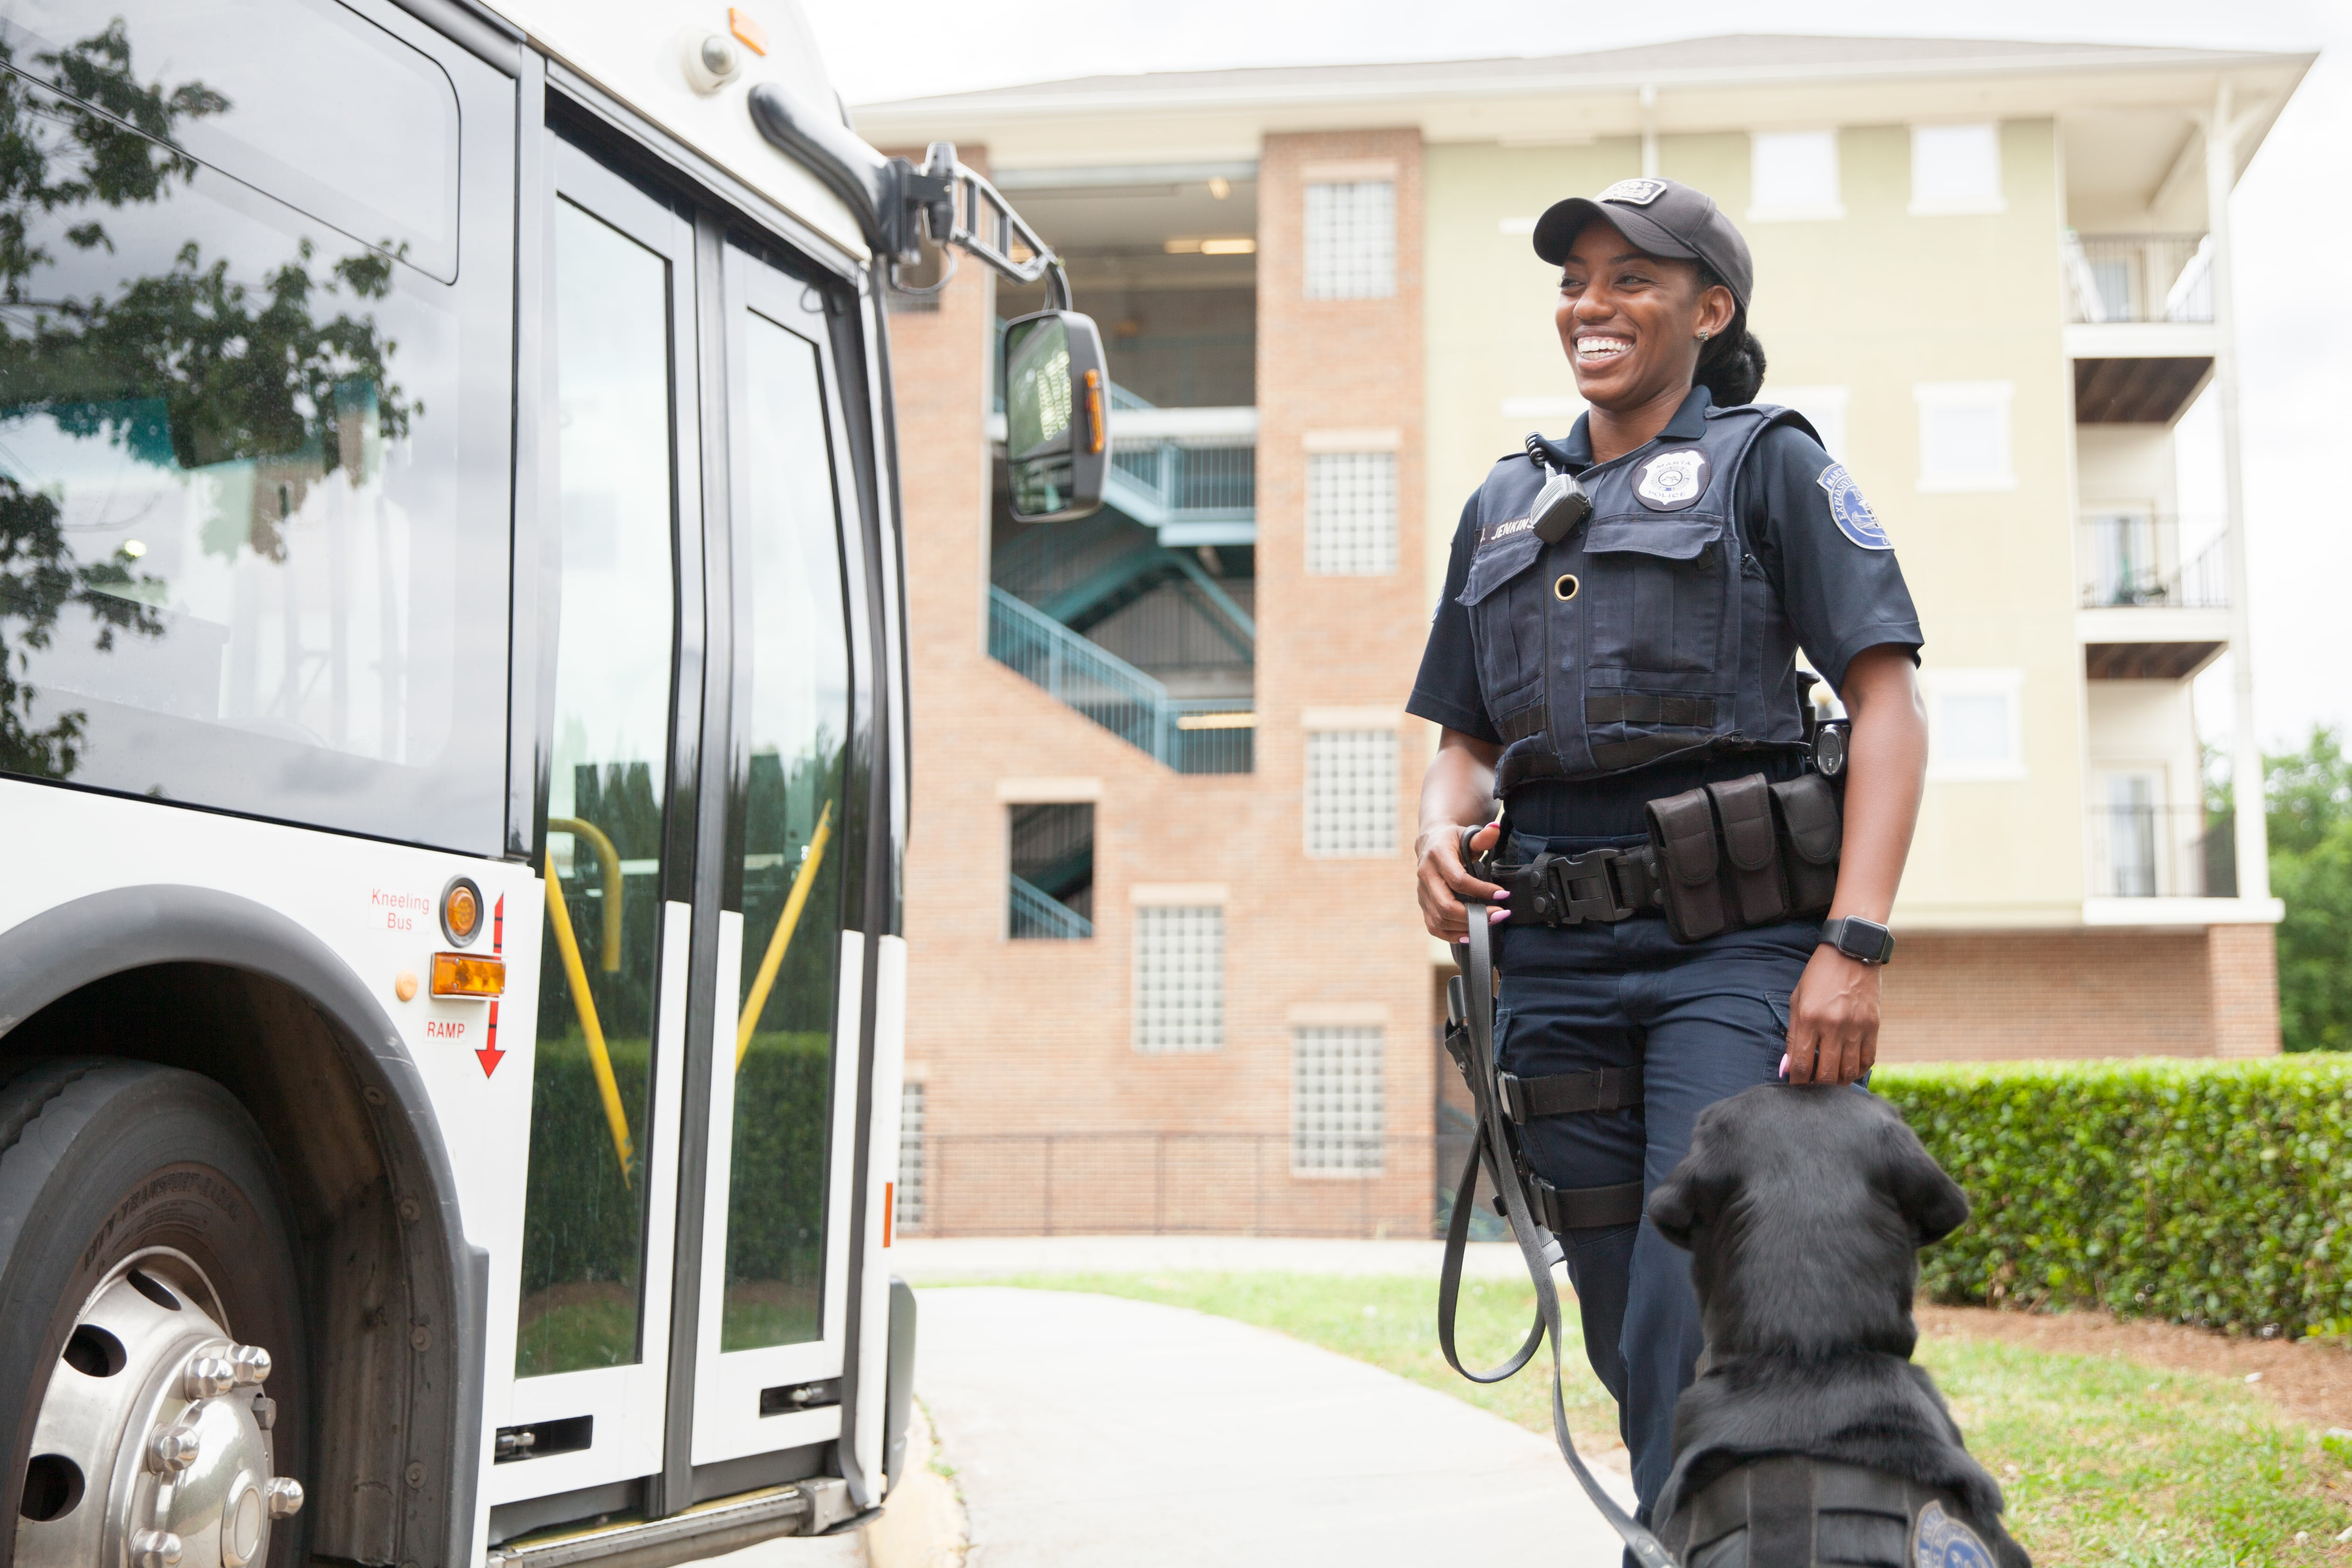 MARTA Police female police officer with k9